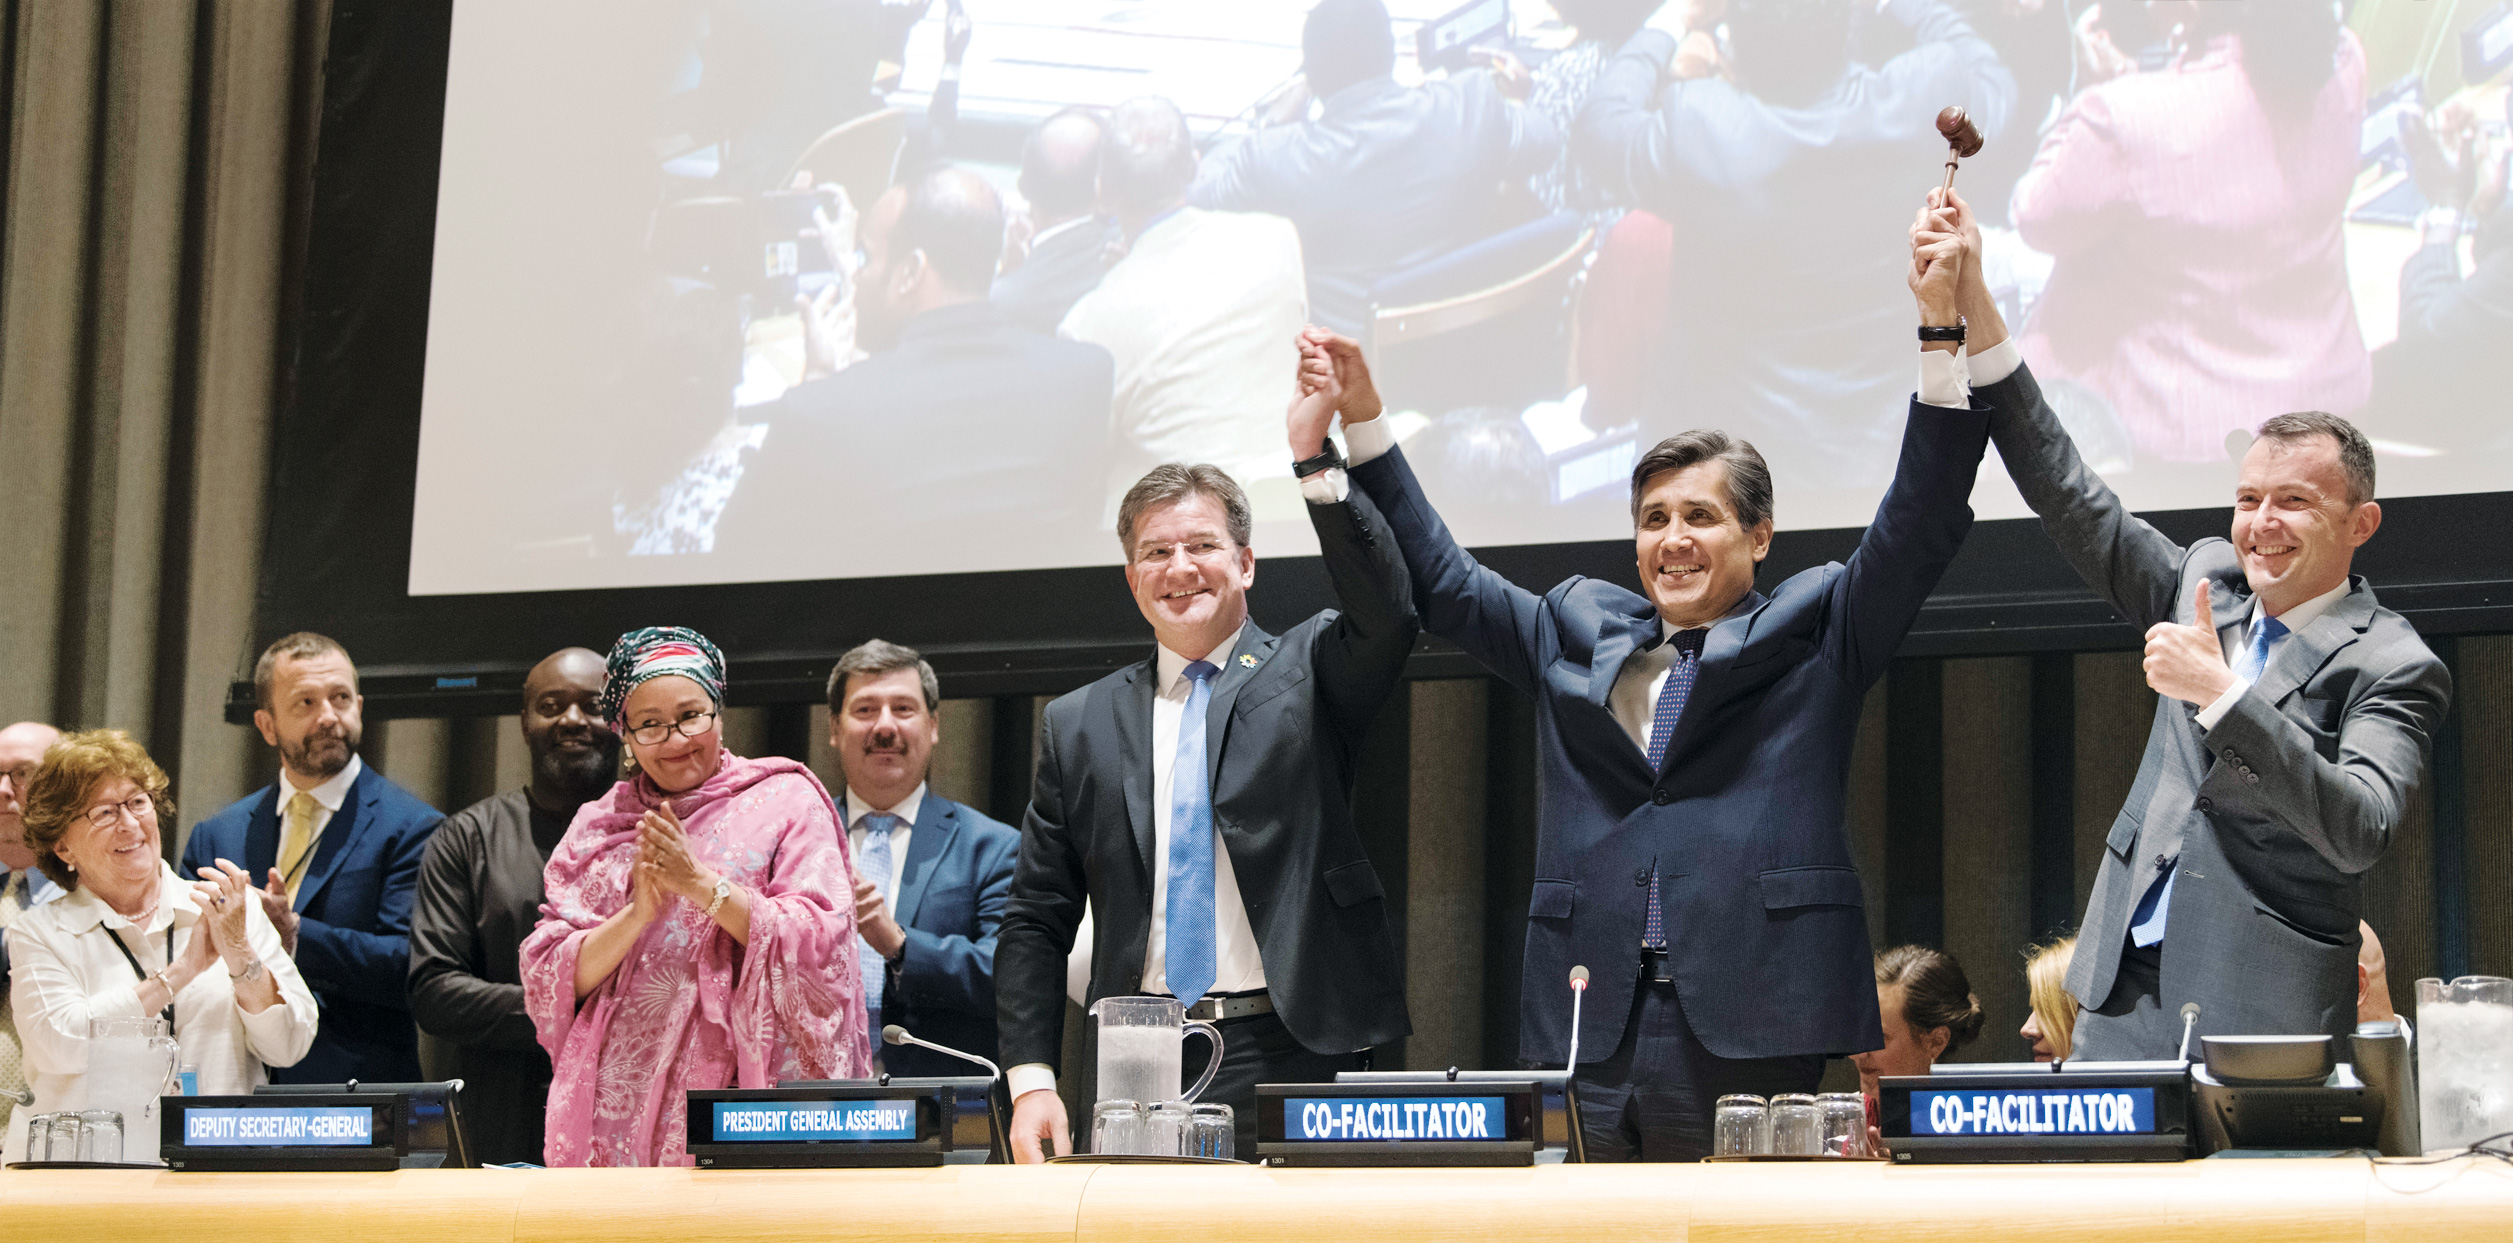 Miroslav Lajčák (centre), President of the 72nd session of the General Assembly, and Co-facilitators for the United Nations Global Compact on Migration process, Juan José Gómez Camacho (second from right), Permanent Representative of Mexico to the United Nations, and Jürg Lauber (right), Permanent Representative of Switzerland to the United Nations, hold up the gavel at the end of the meeting finalizing the draft document.